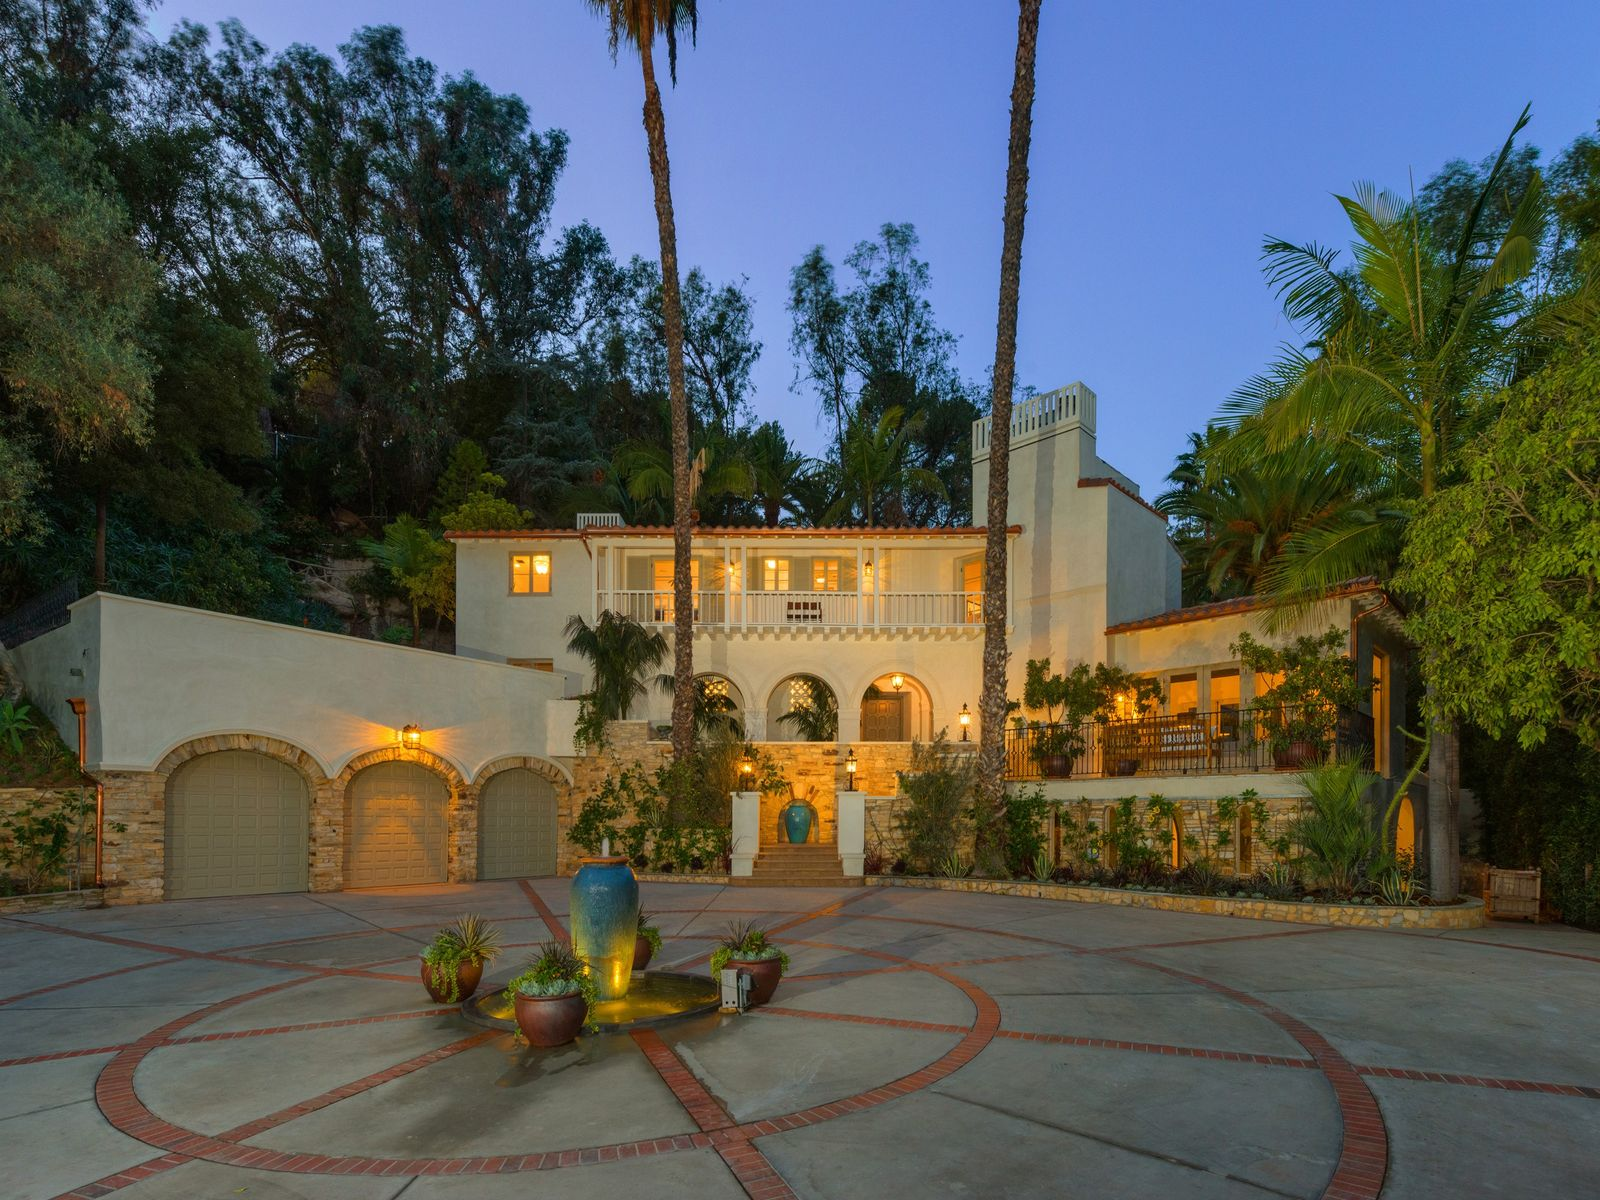 Villa Andalusia, Los Angeles CA Single Family Home - Los Angeles Real Estate